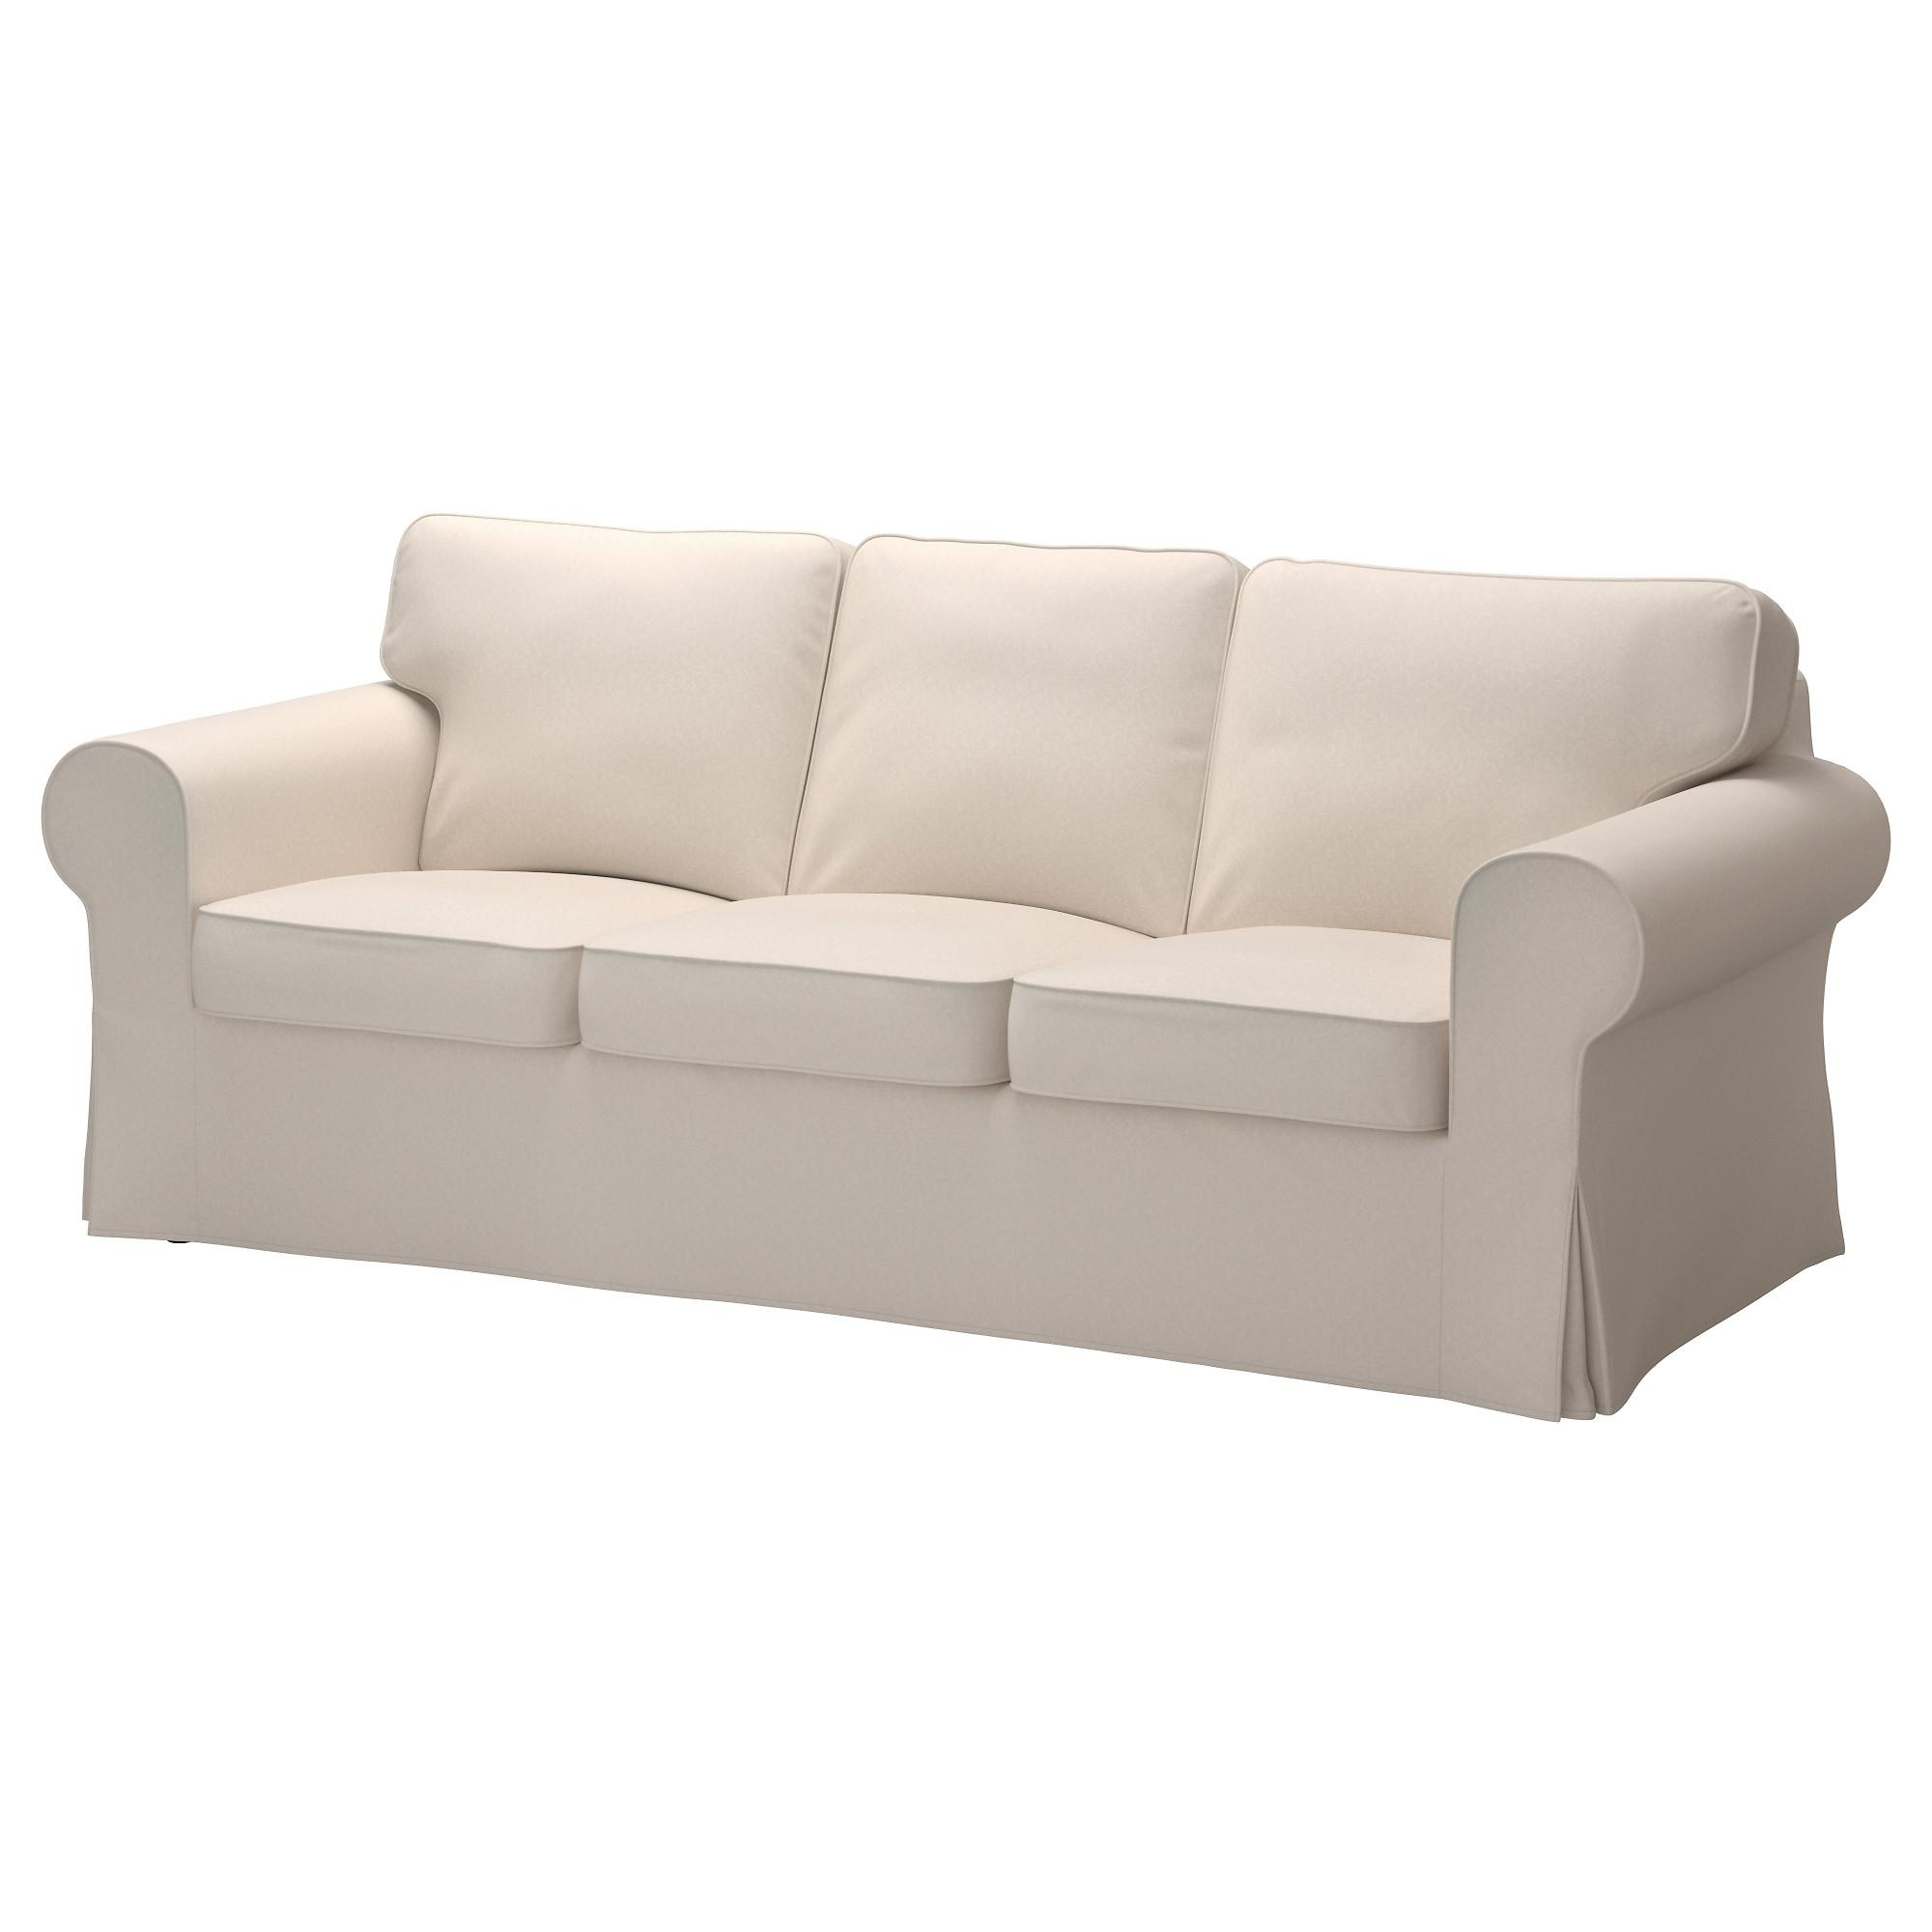 20 Best Ideas Armless Sofa Slipcovers Sofa Ideas